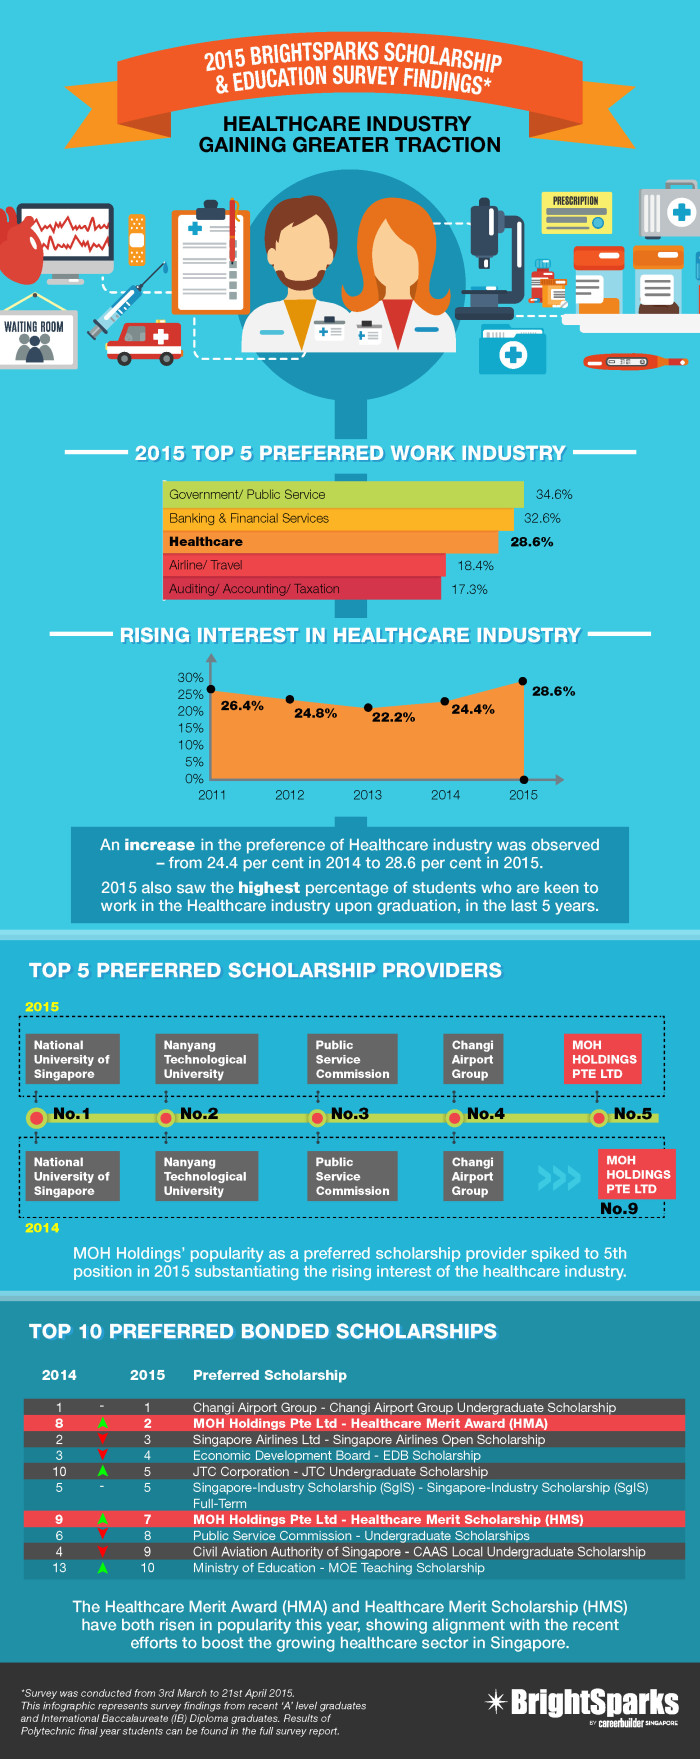 BrightSparks Scholarship & Education Survey 2015 Infographic